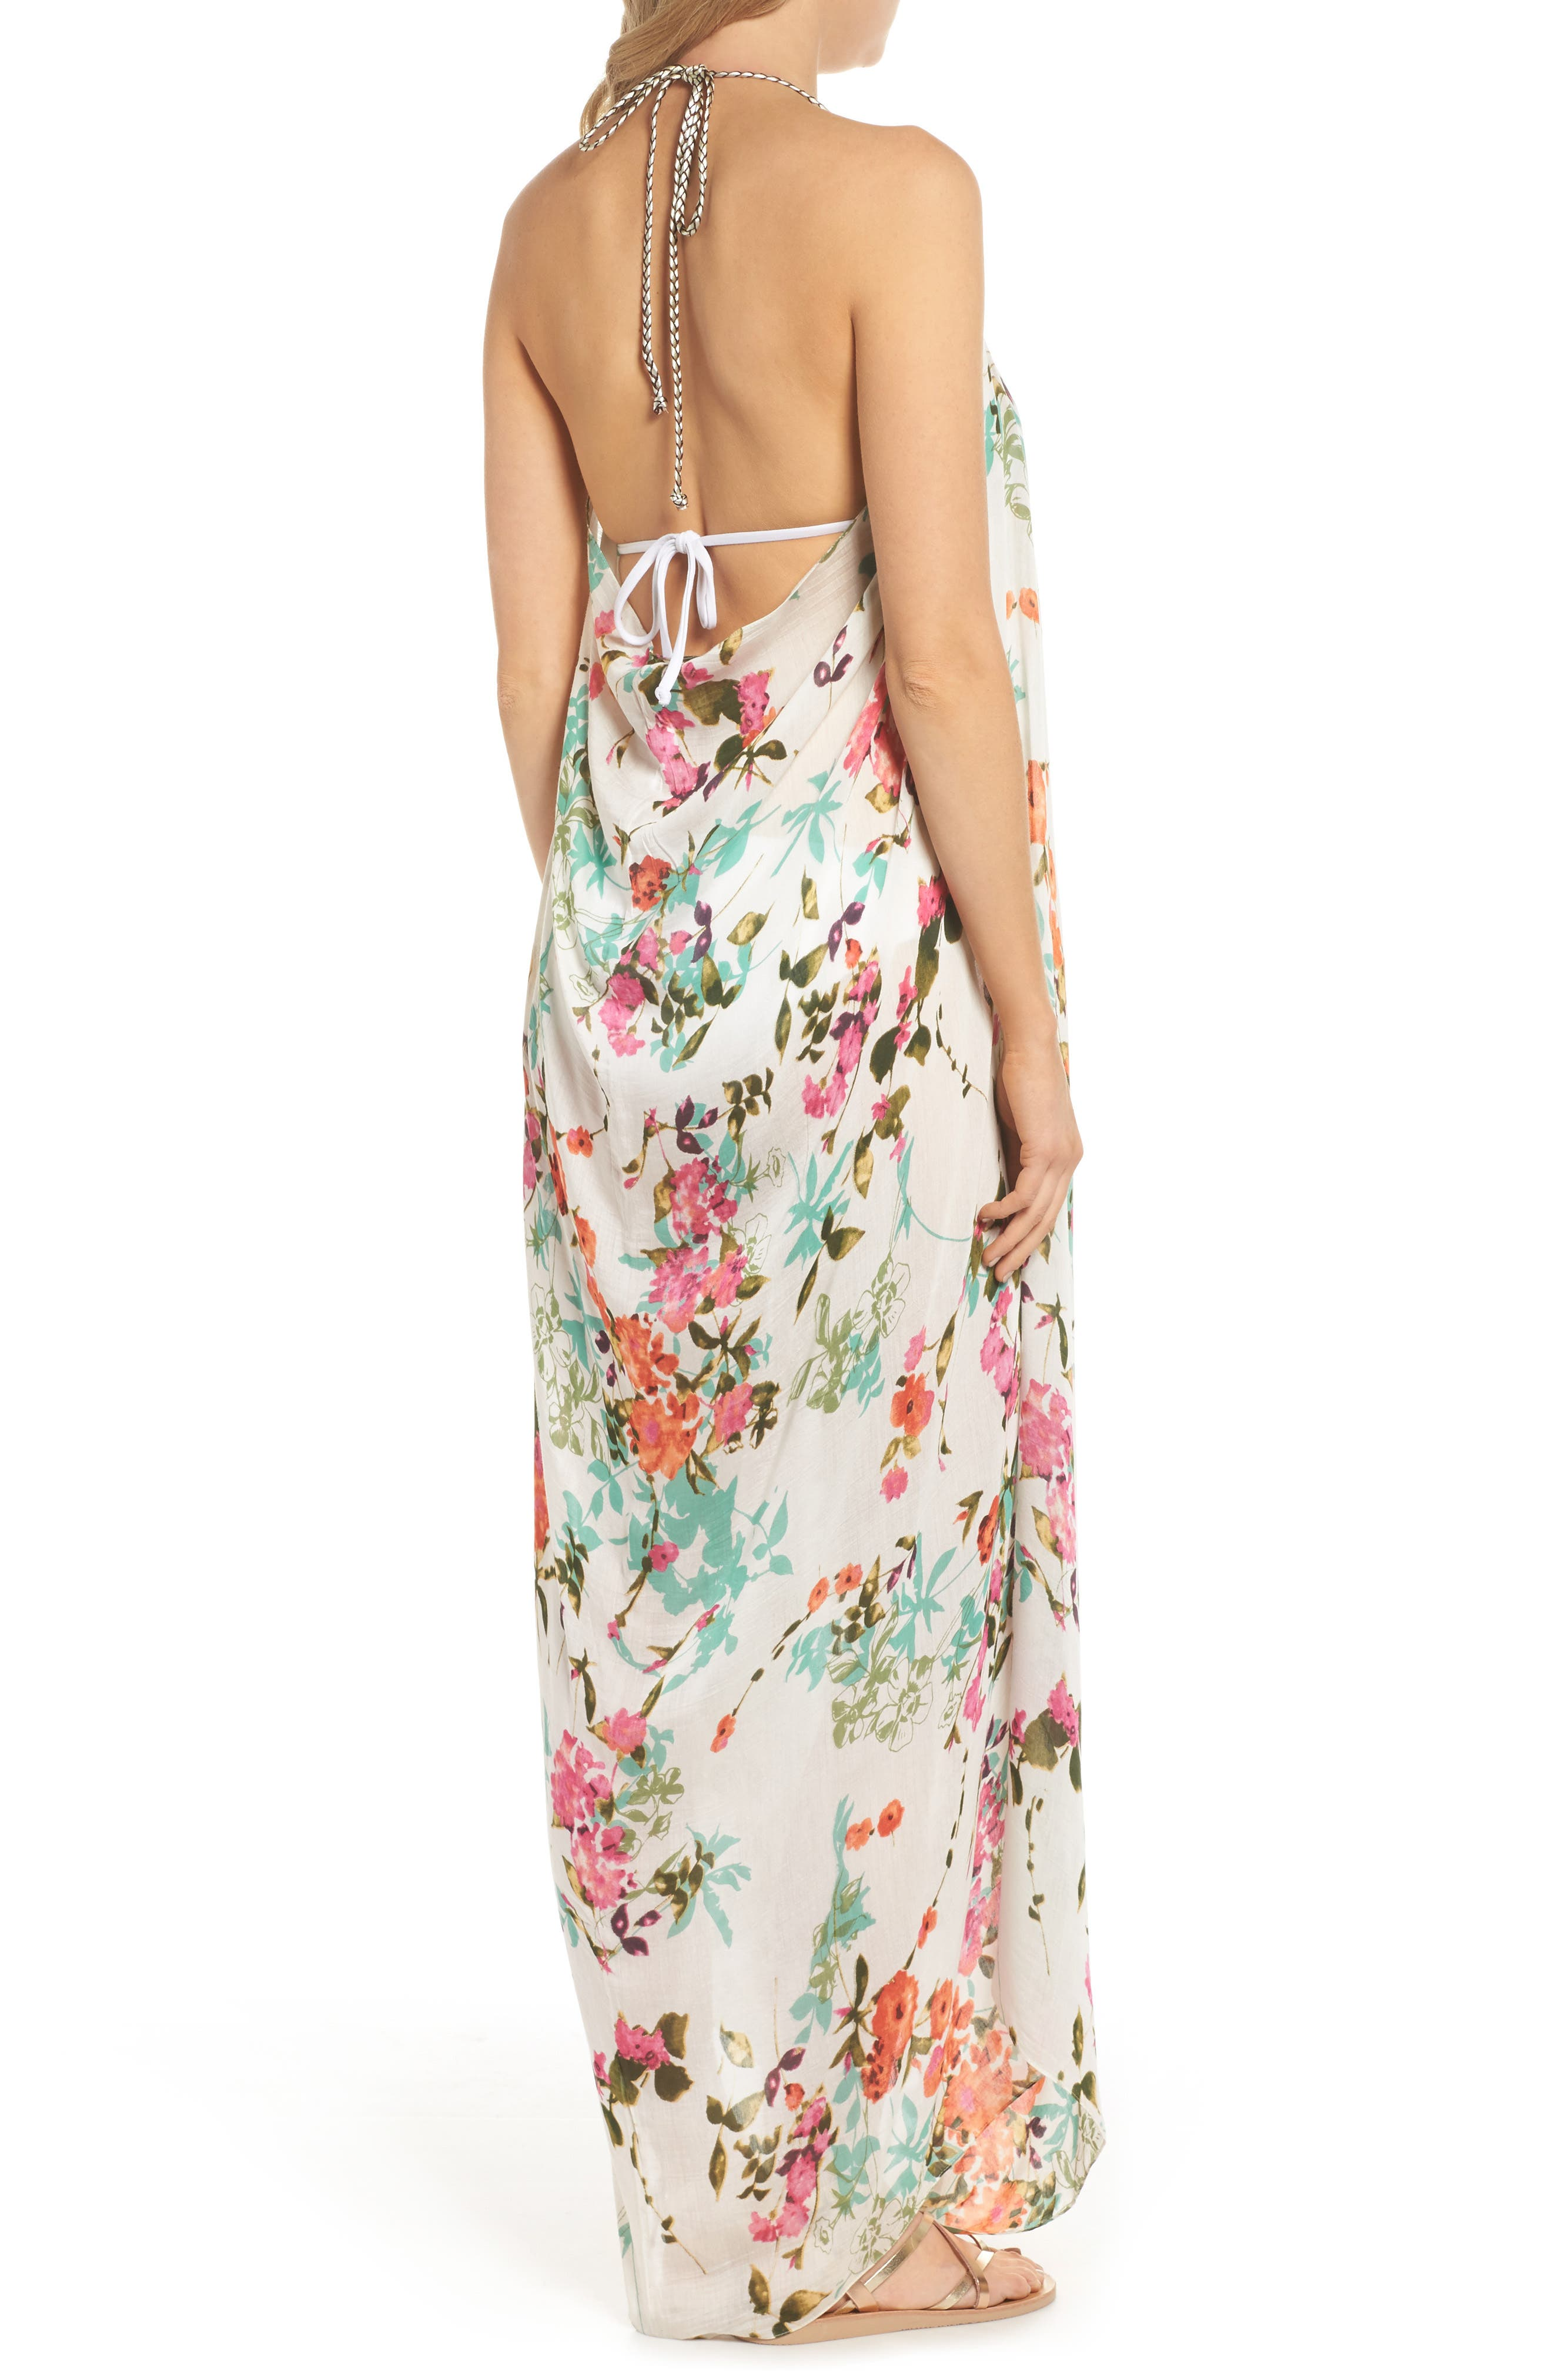 Beach to Street Cover-Up Dress,                             Alternate thumbnail 2, color,                             900